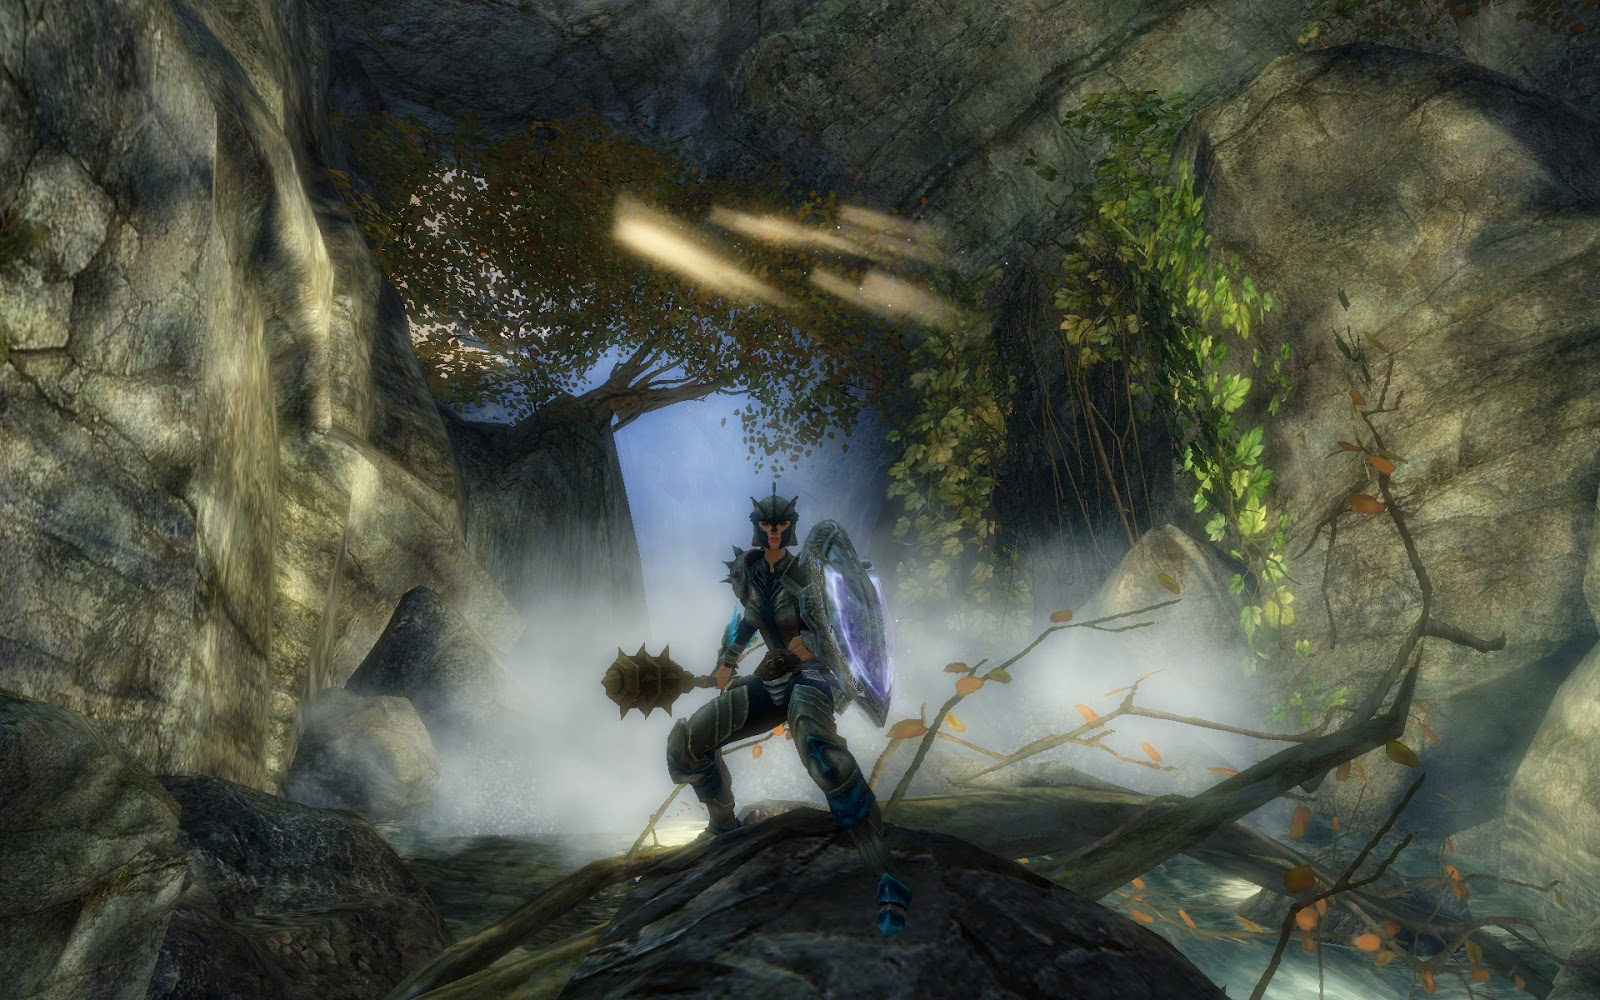 Of Course I'll Play It: Guild Wars 2 - A Look at the Guardian